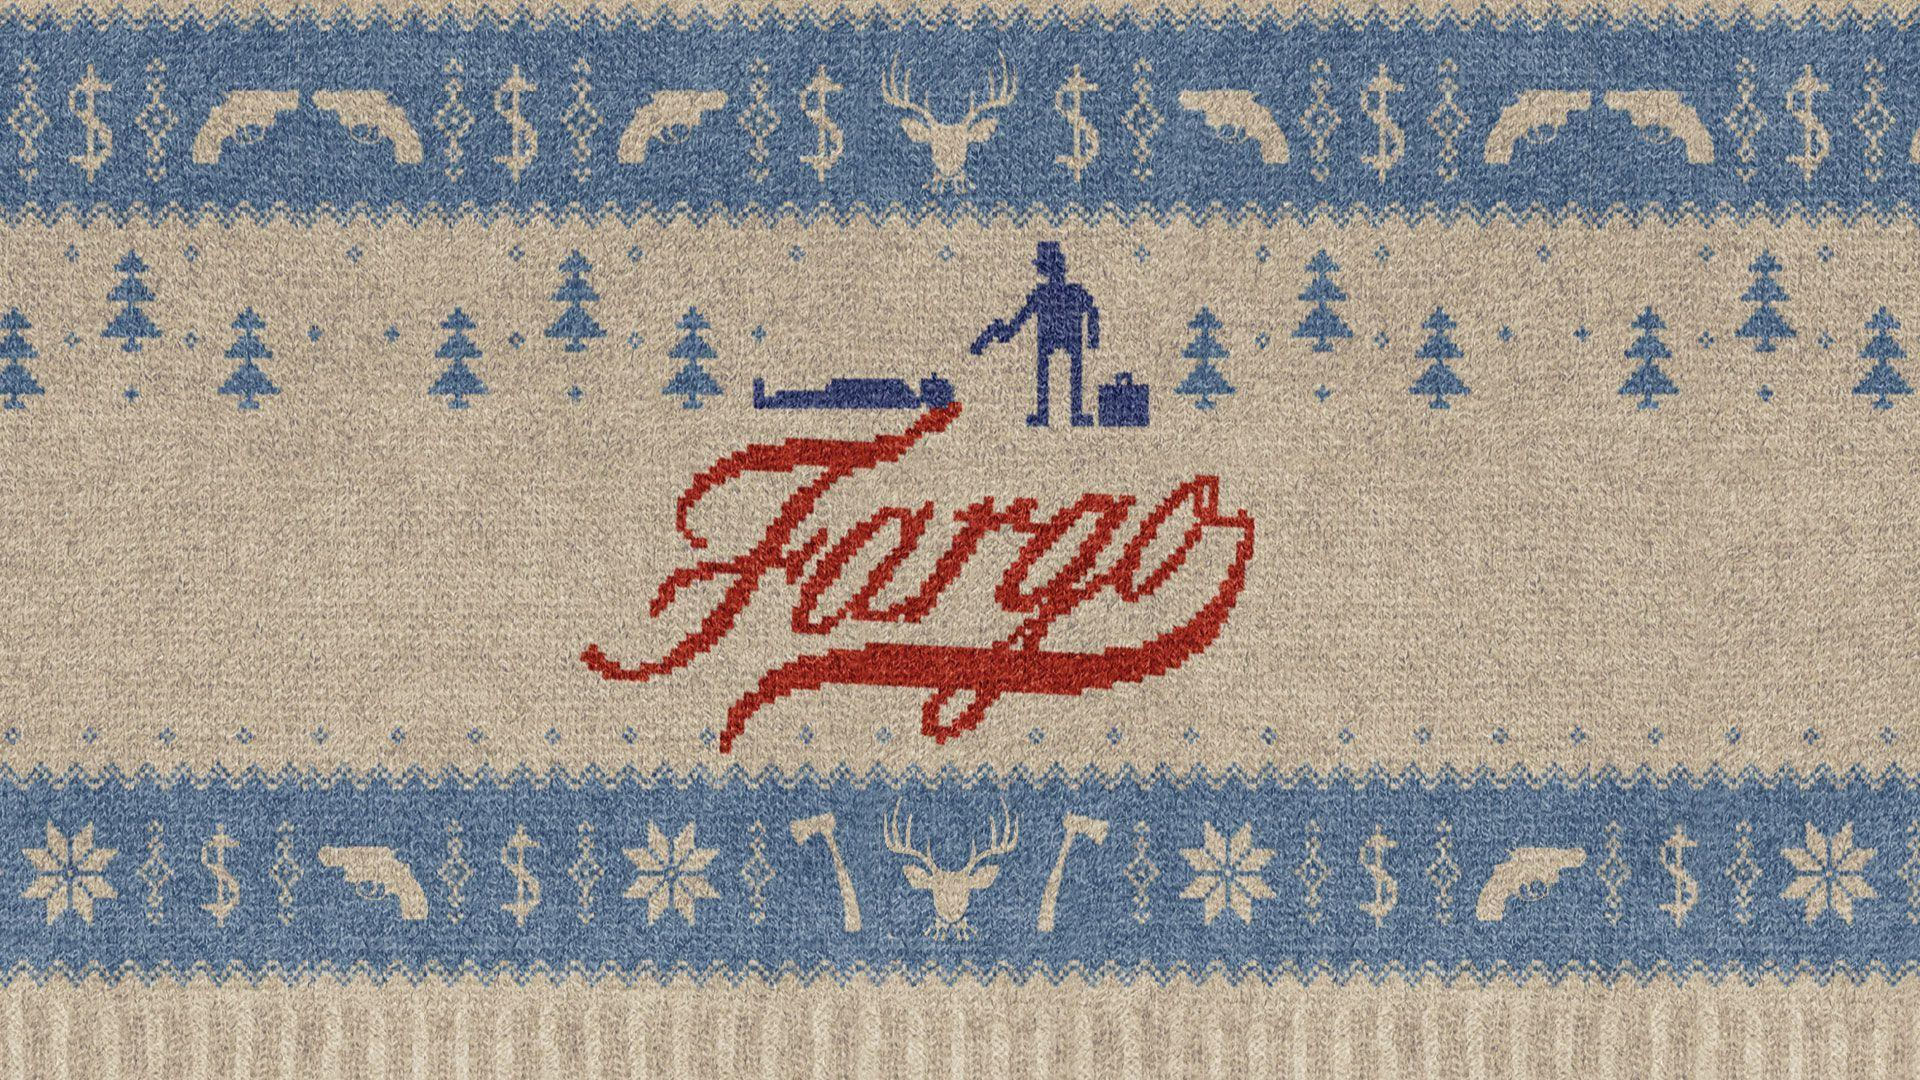 fargo hd wallpaper 65304